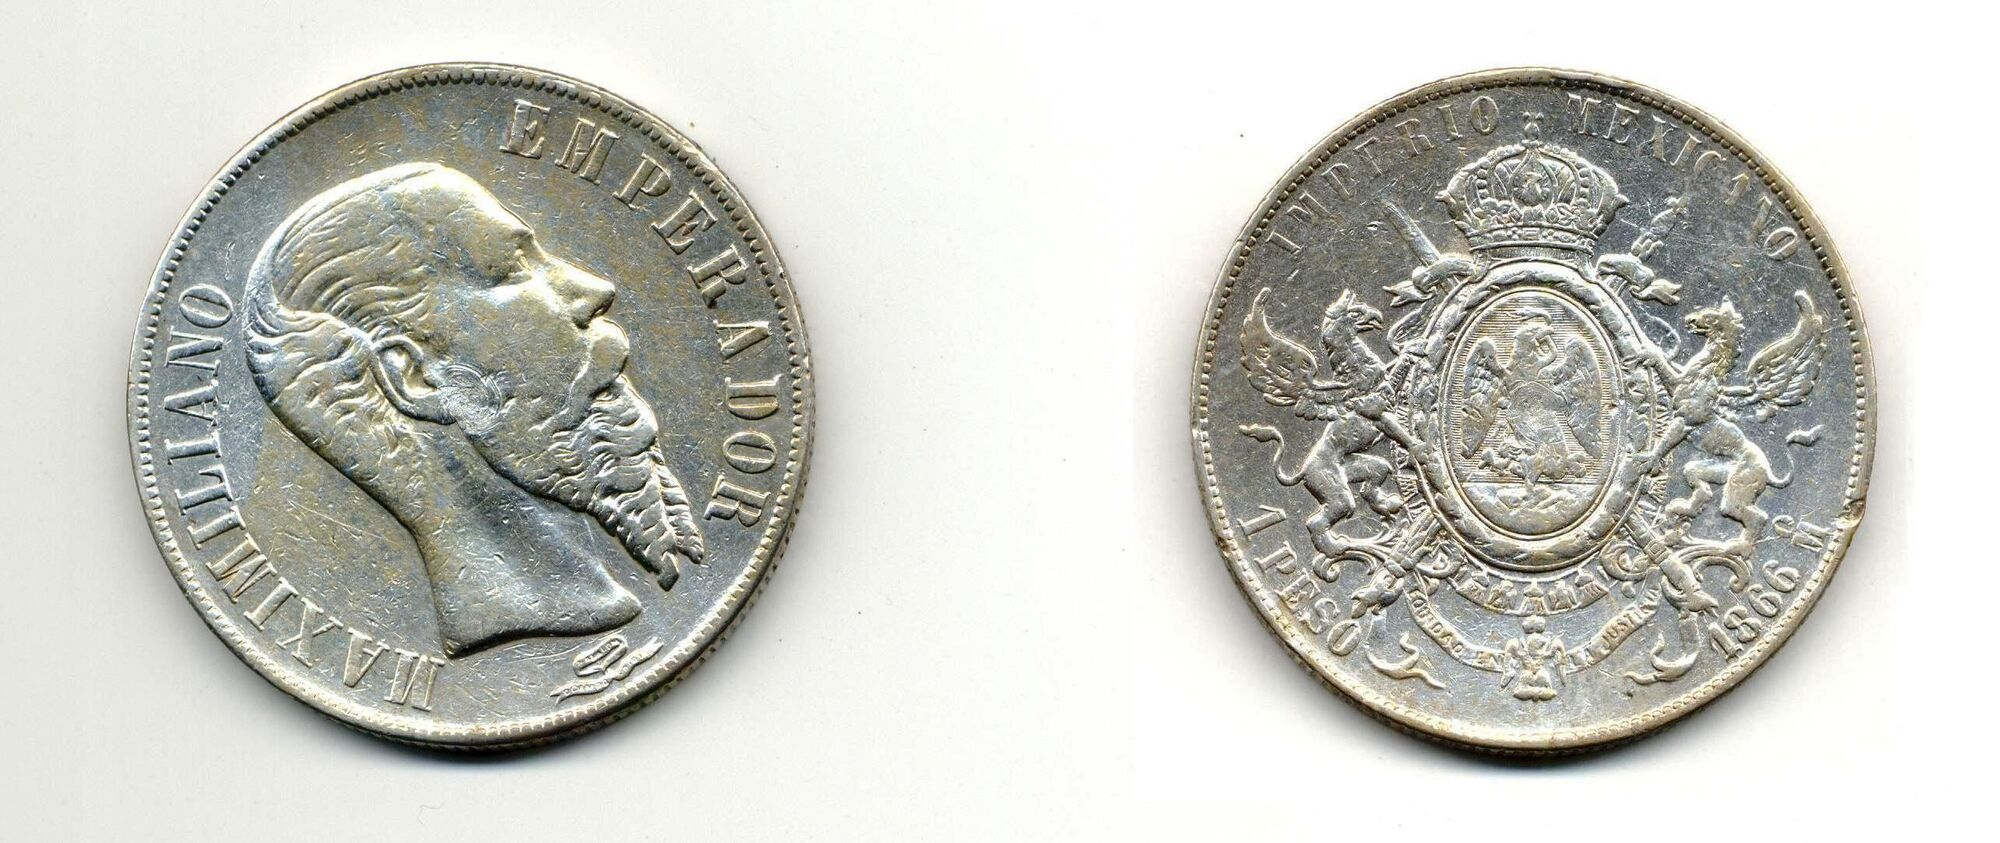 Mexican 1 peso coin | Currency Wiki | FANDOM powered by Wikia